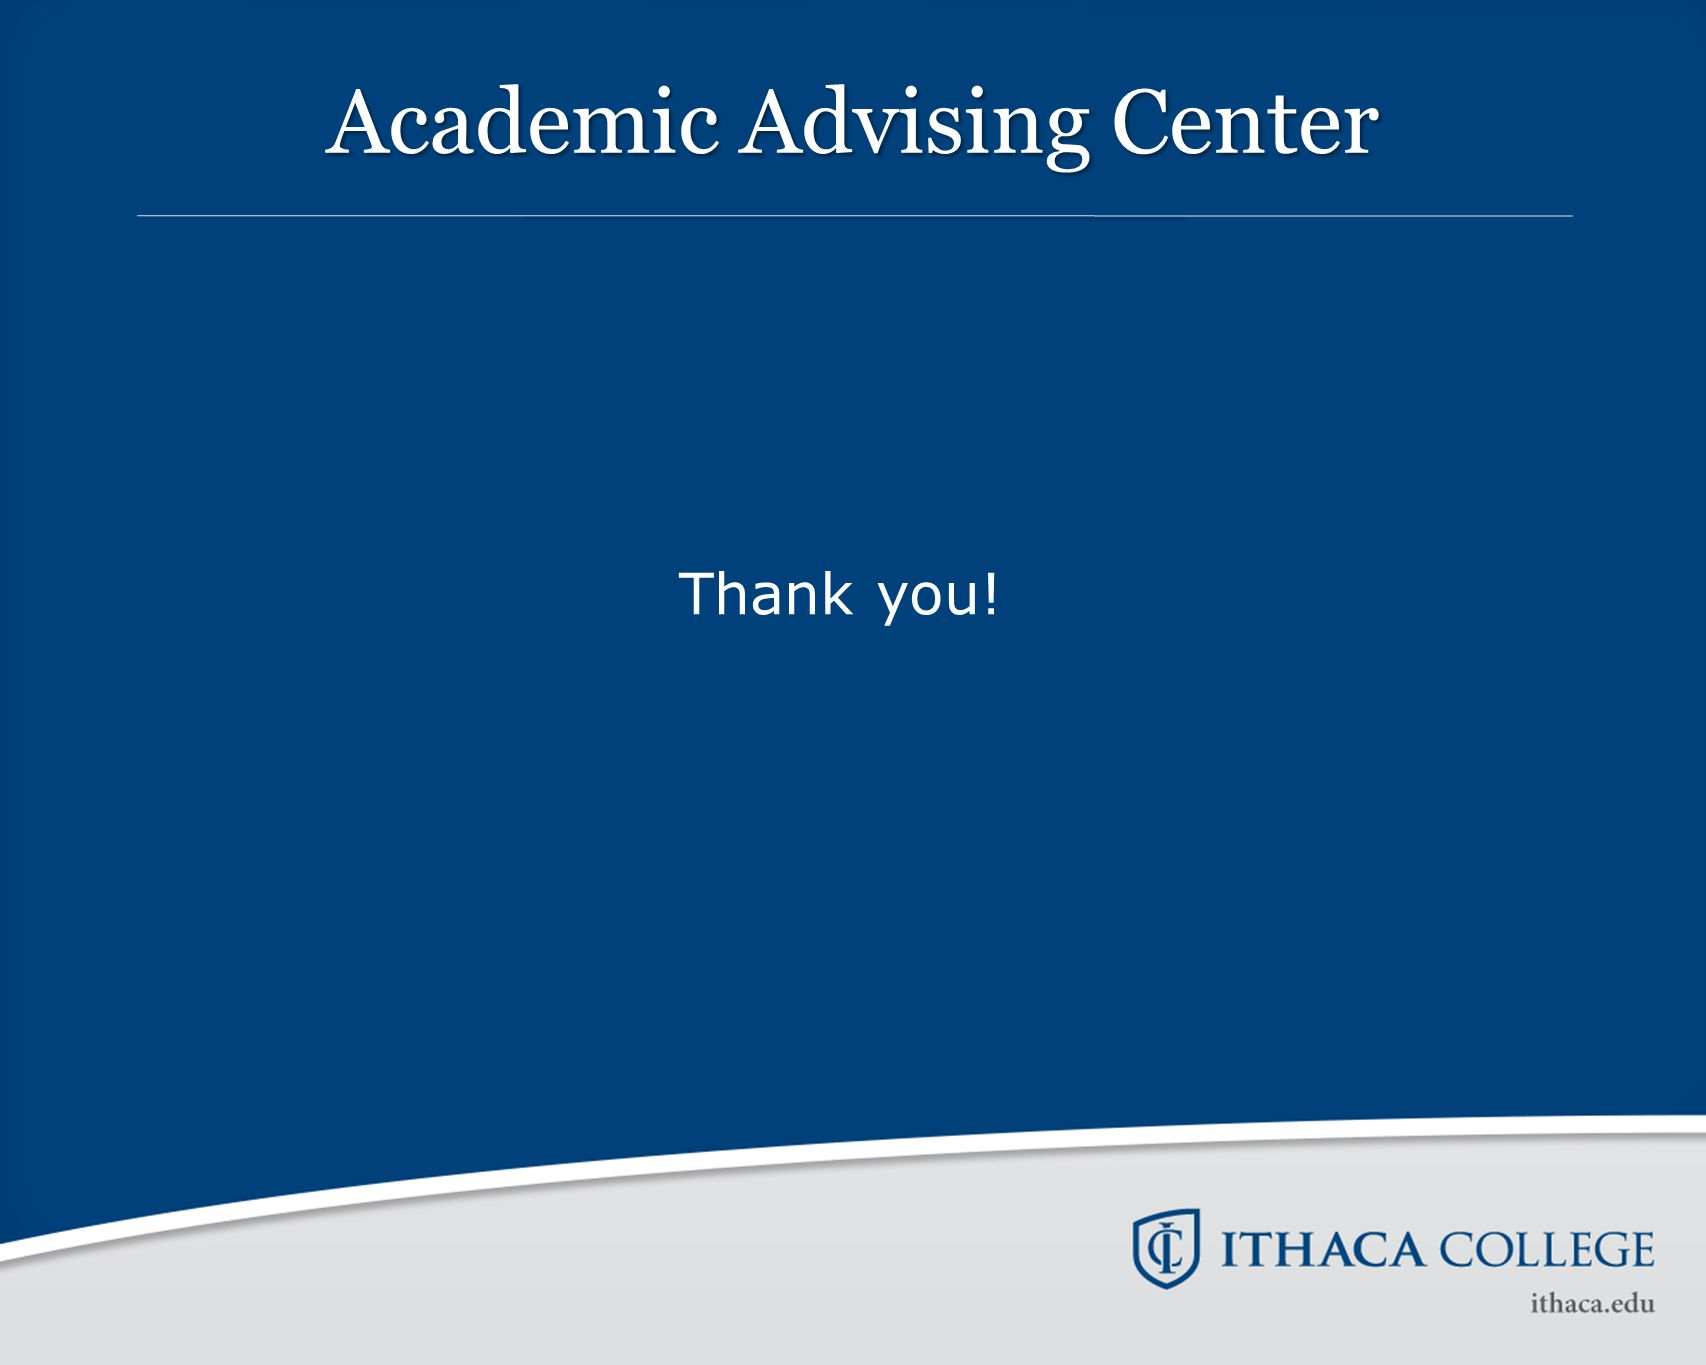 Academic Advising Center Thank you!